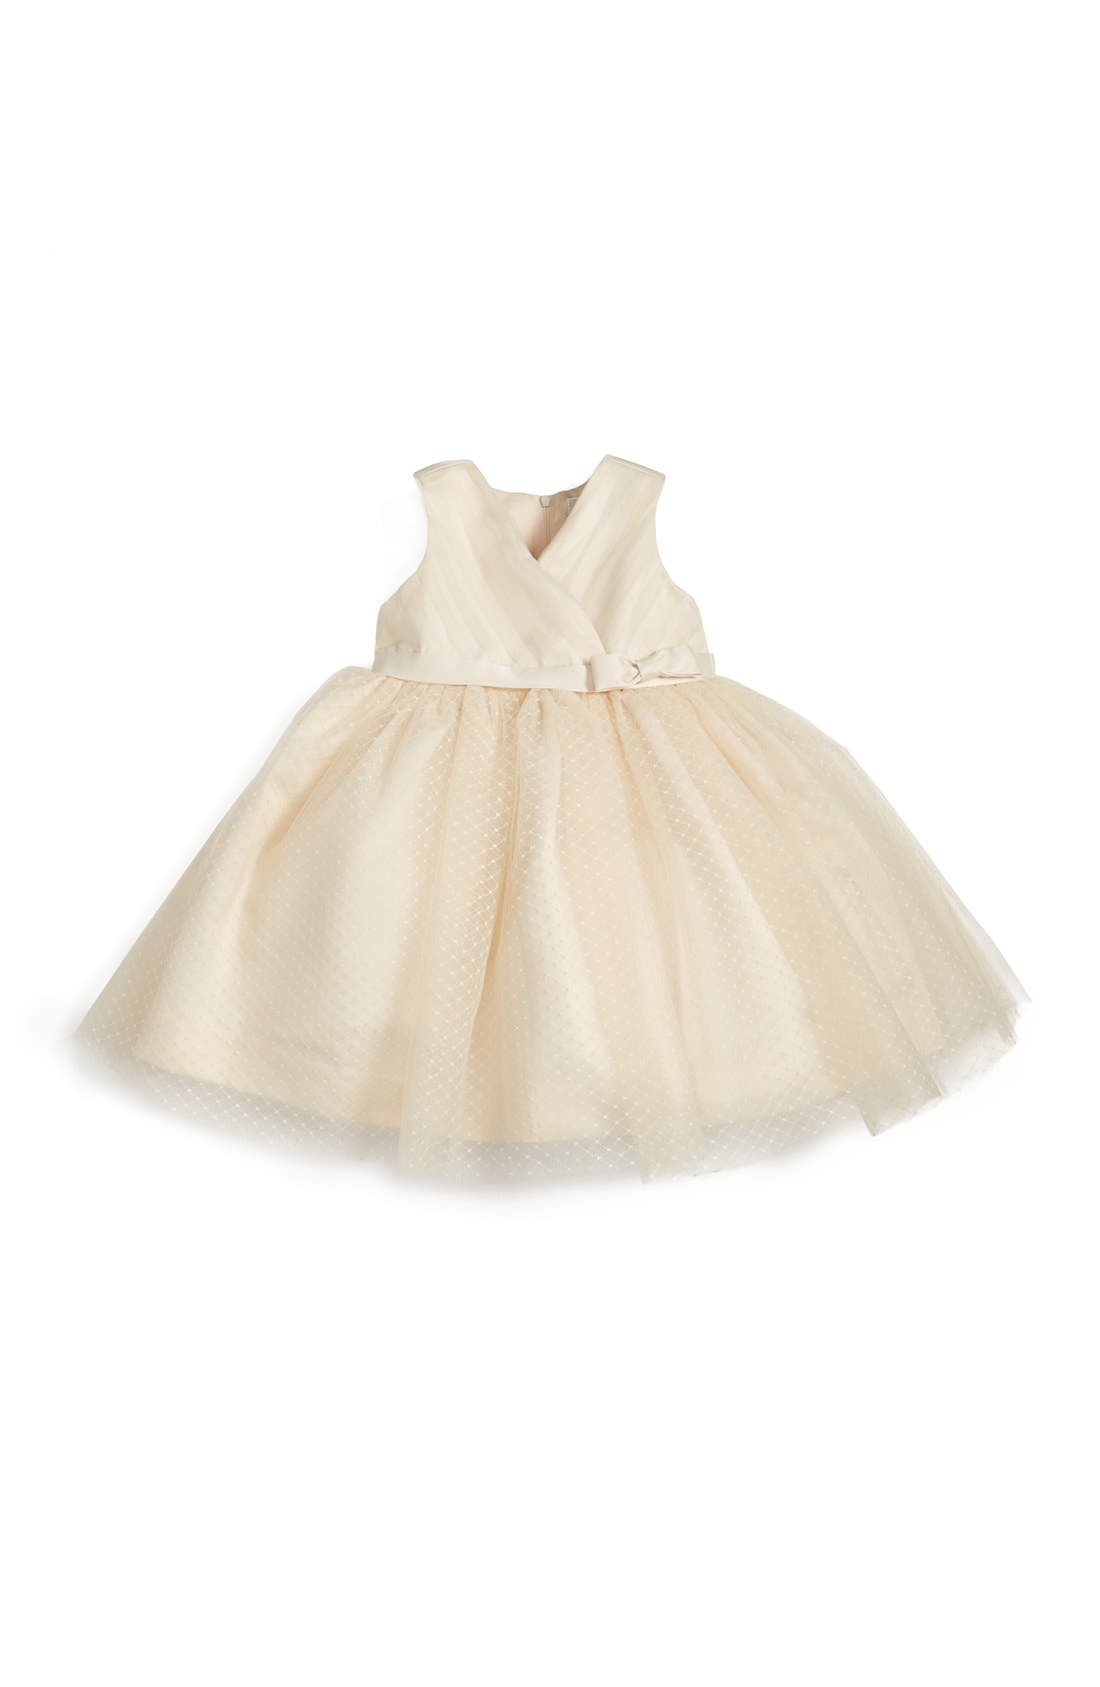 Satin & Tulle Dress,                         Main,                         color, Sand